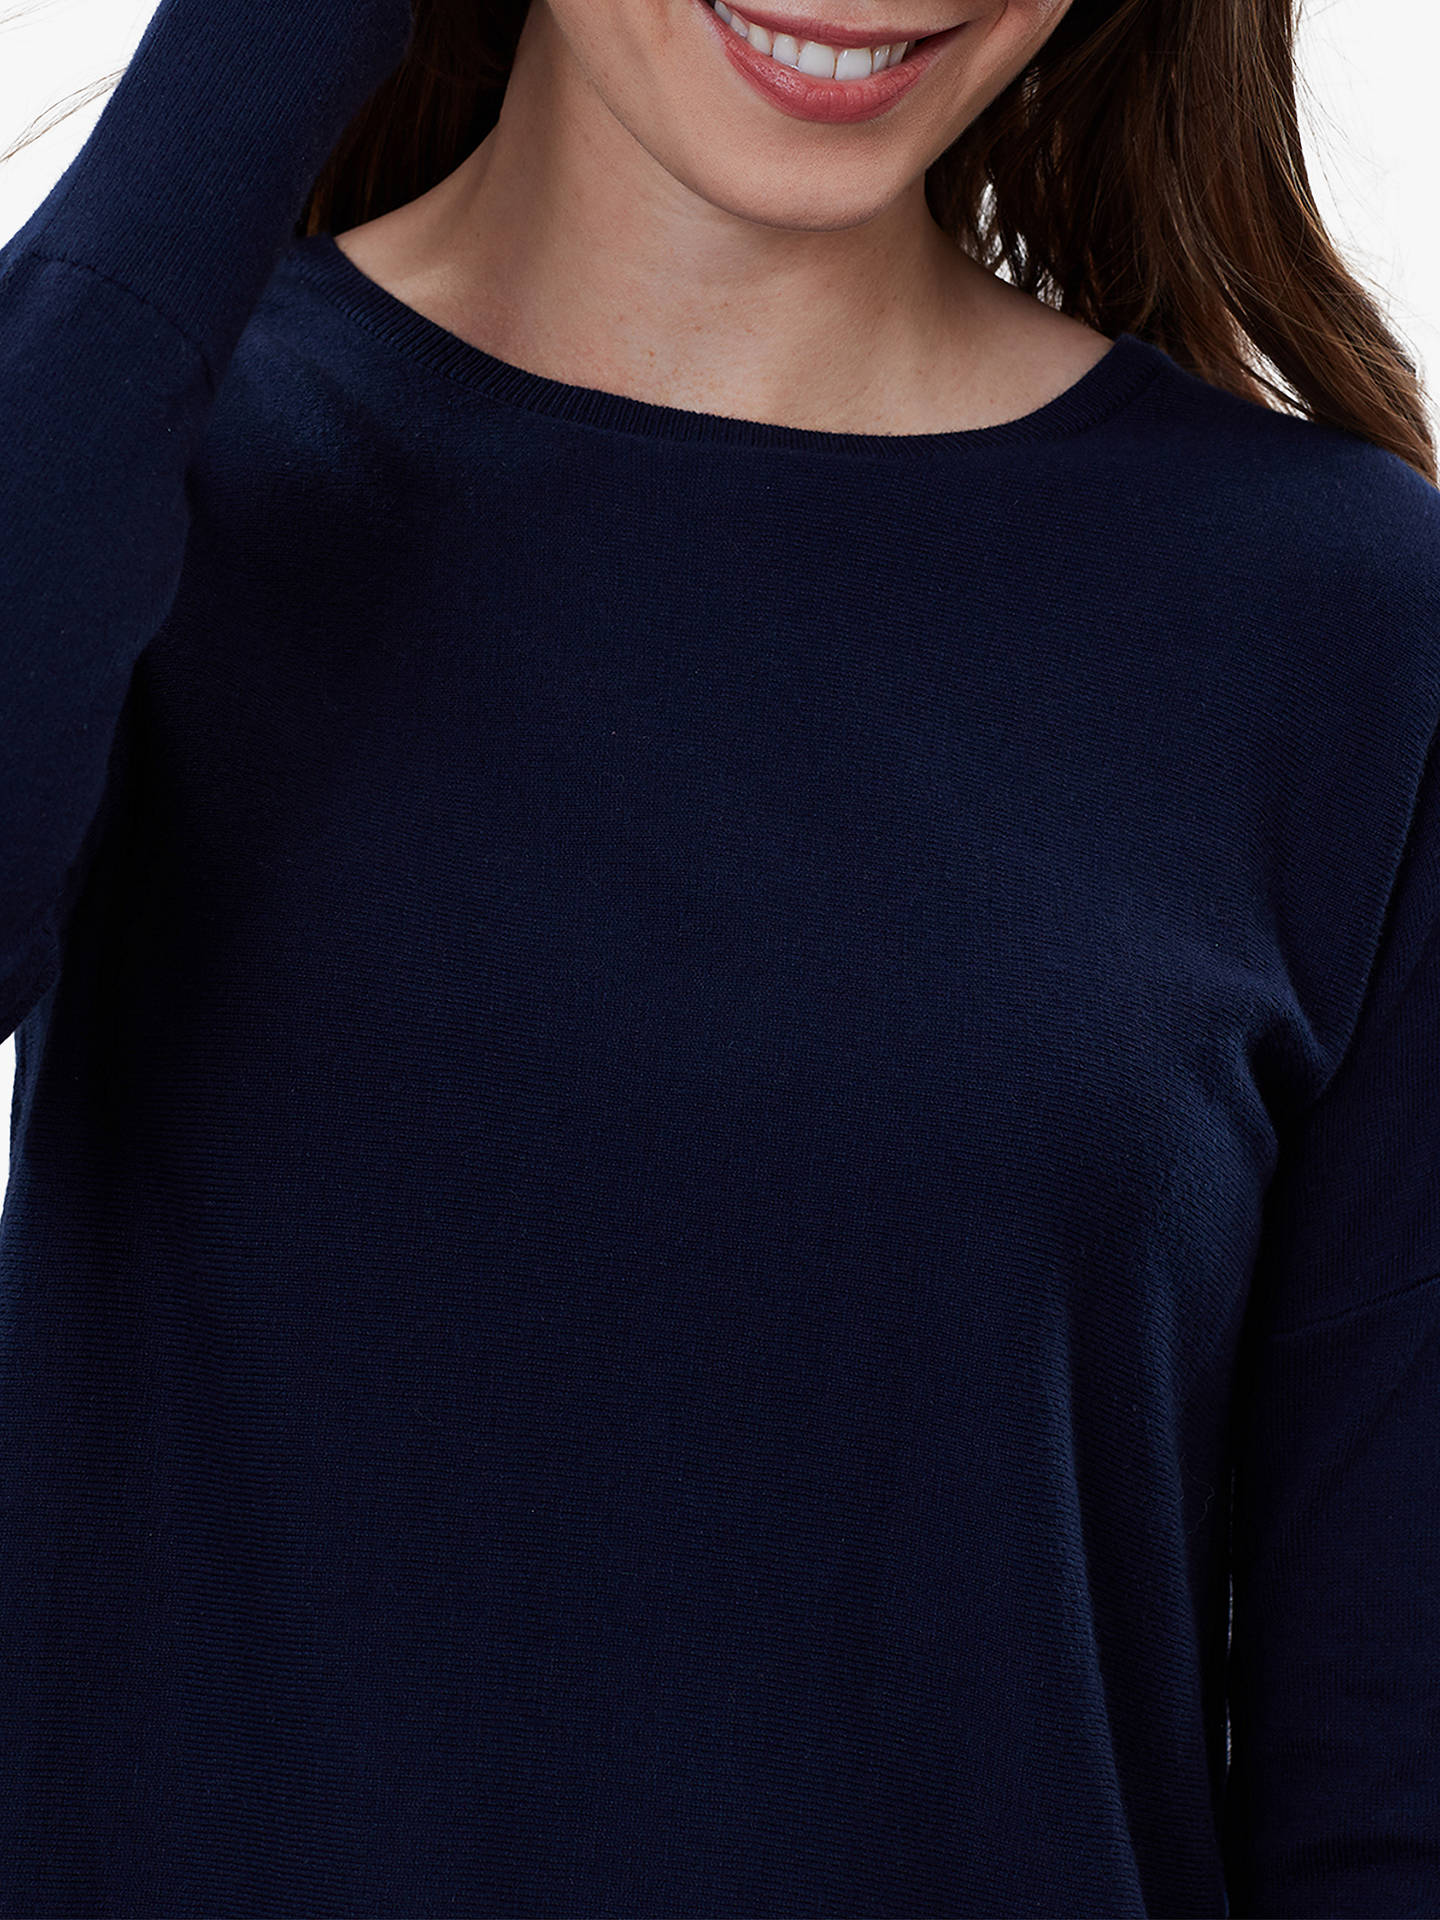 Buy Joules Poppy Cotton Round Neck Jumper, French Navy, 18 Online at johnlewis.com